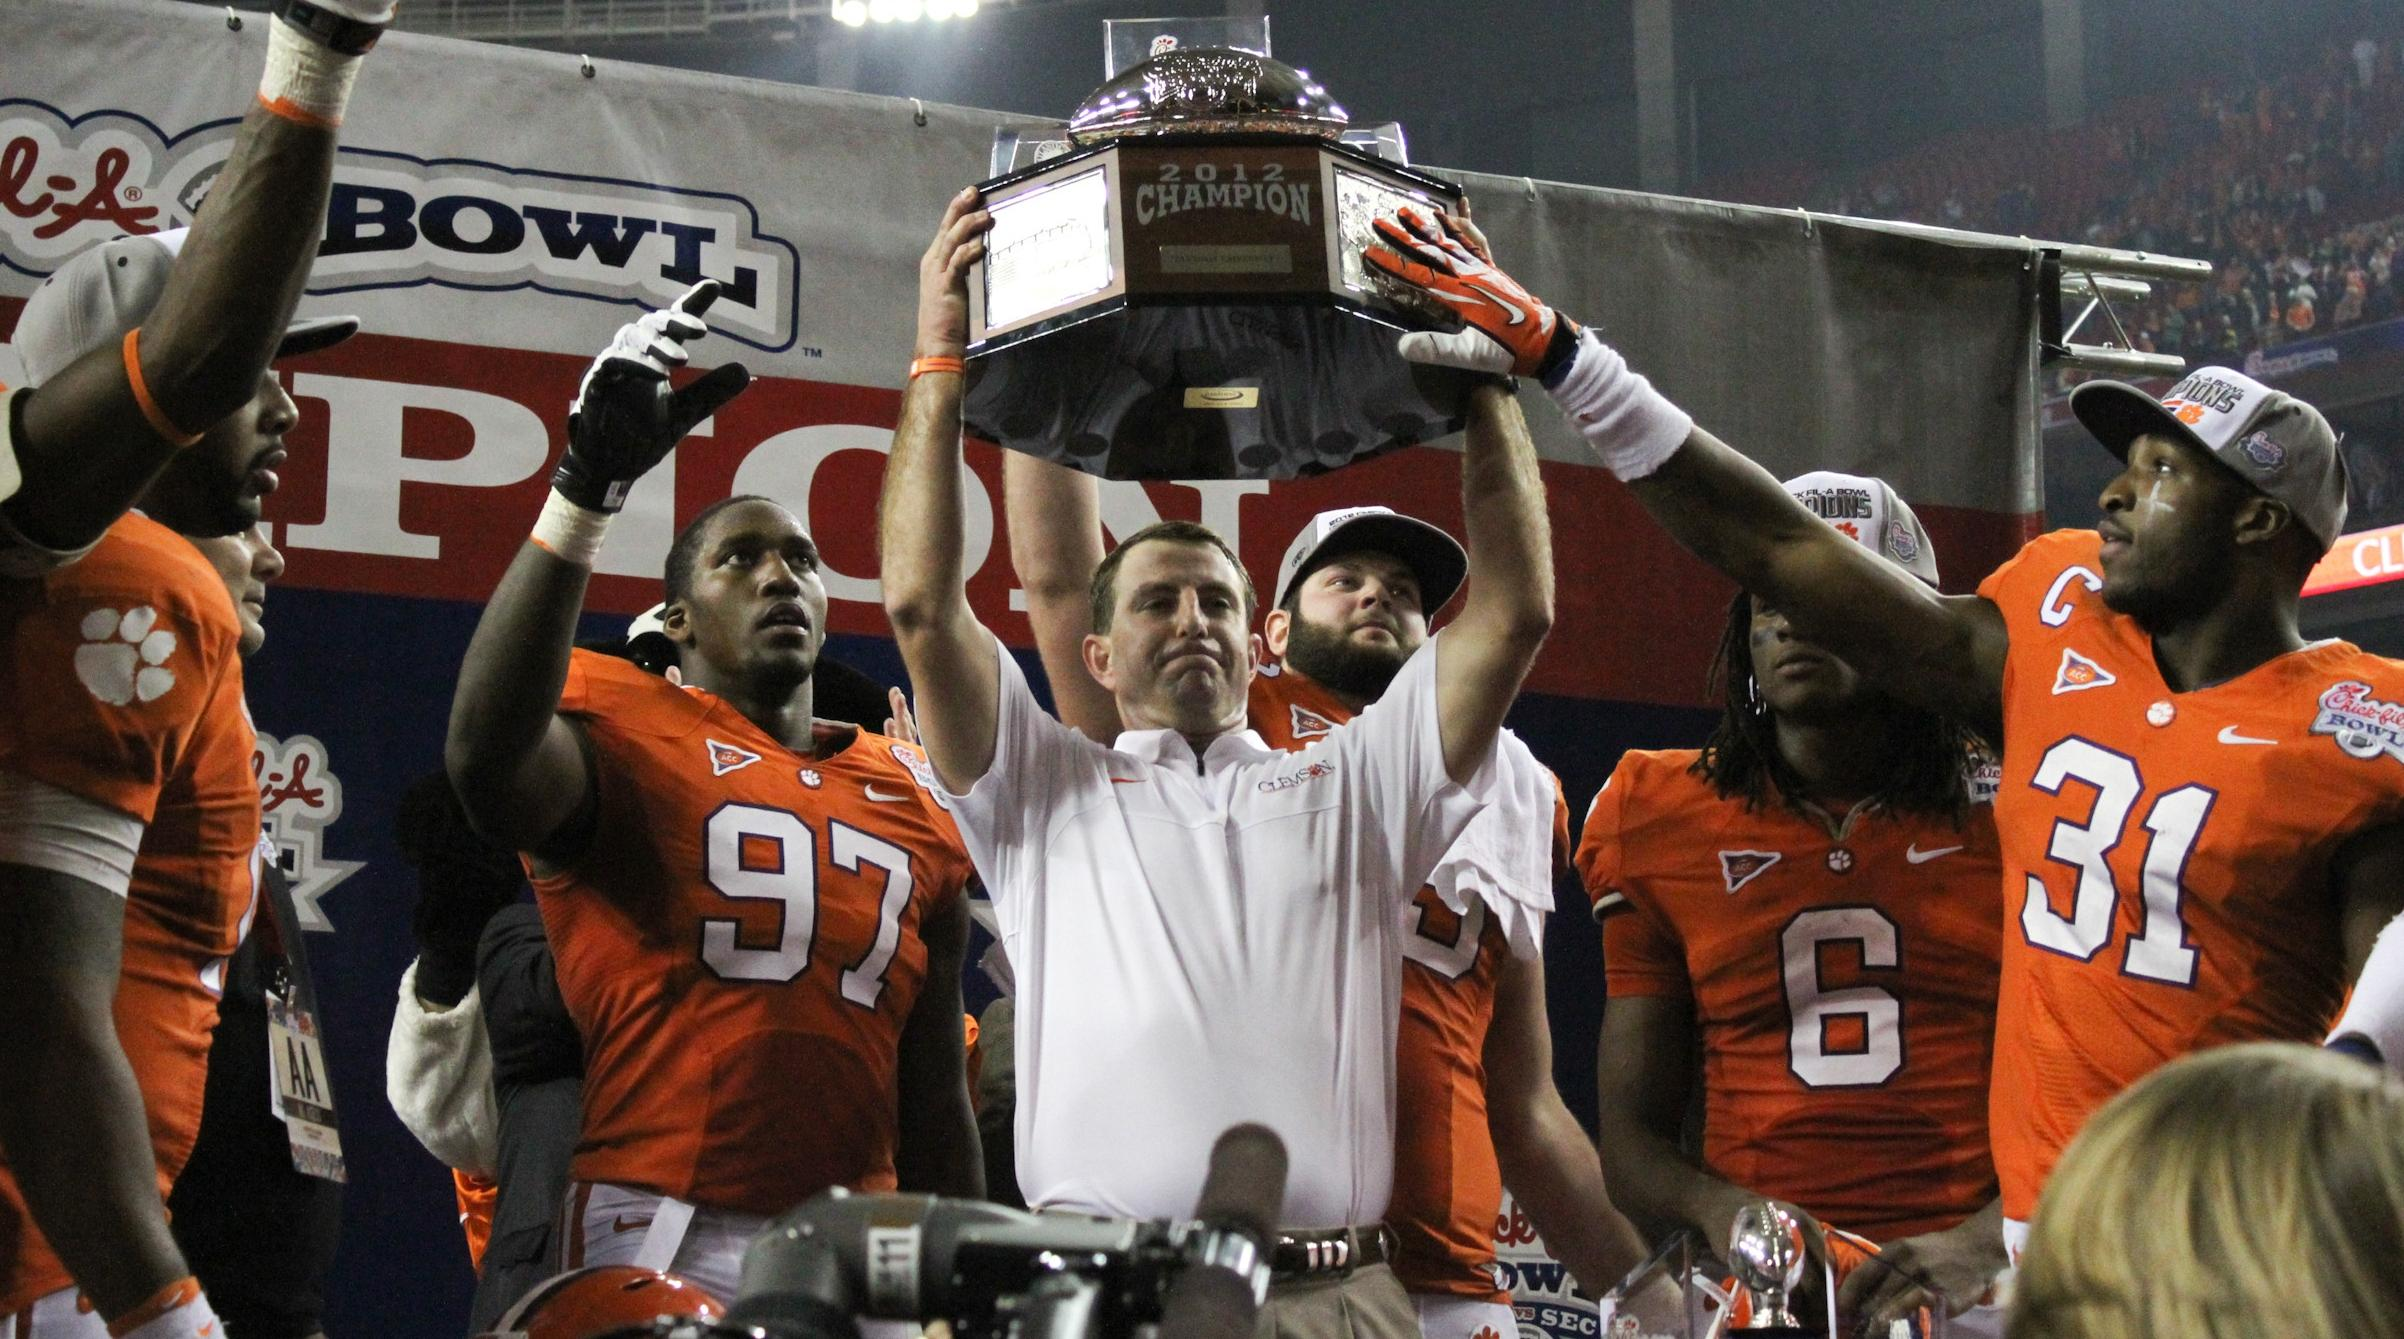 Clemson Football Video: 2012 Season Highlights